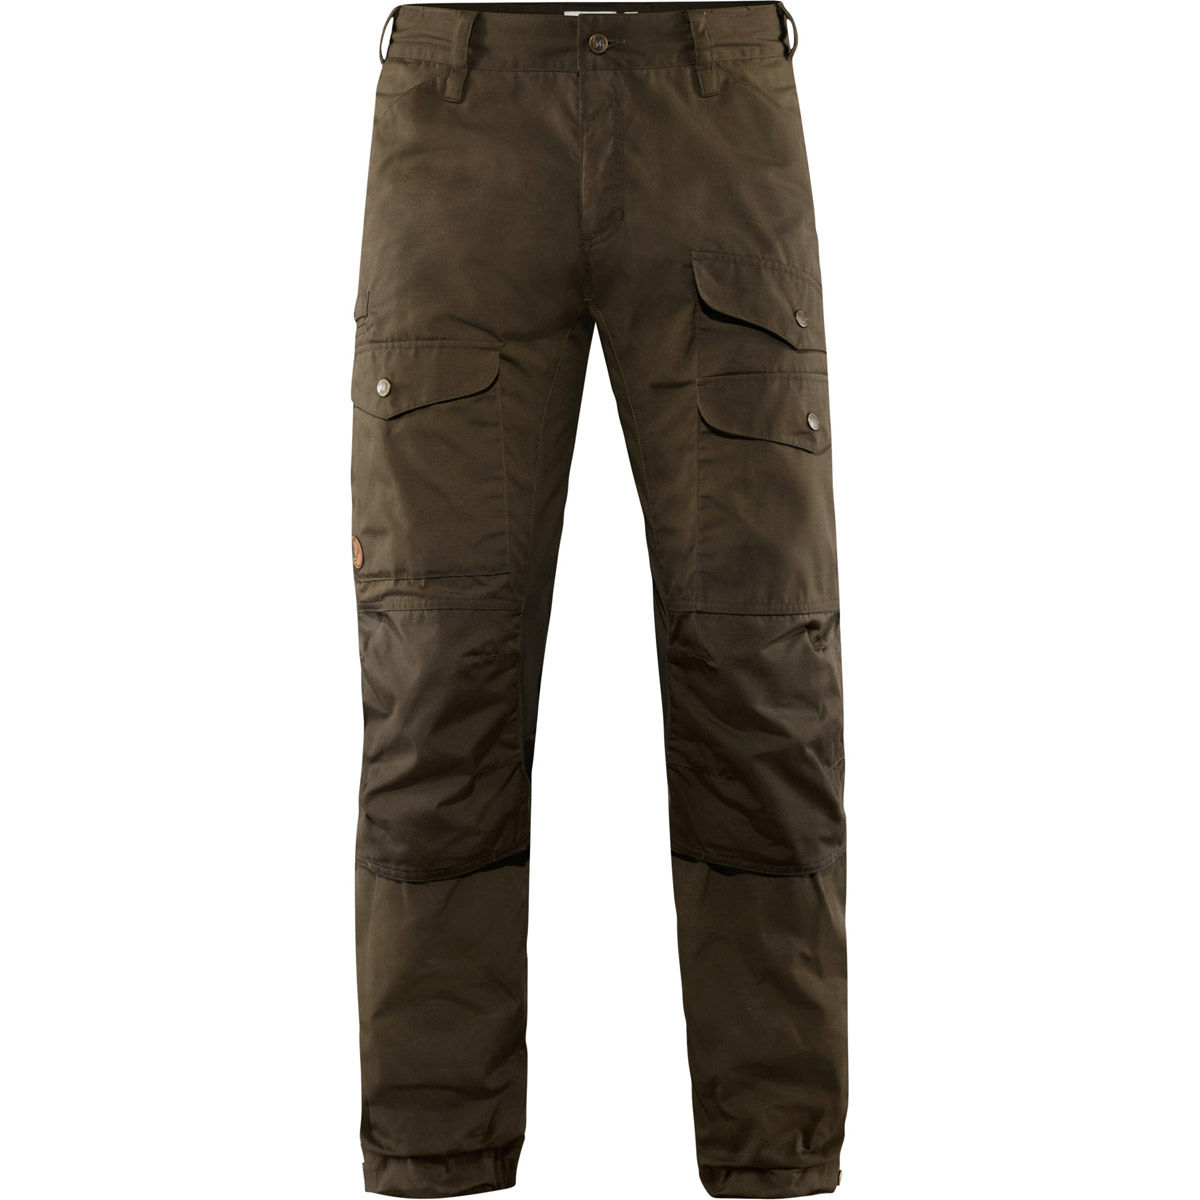 Fjallraven Vidda Pro Ventilated Regular Trousers - Dark Olive